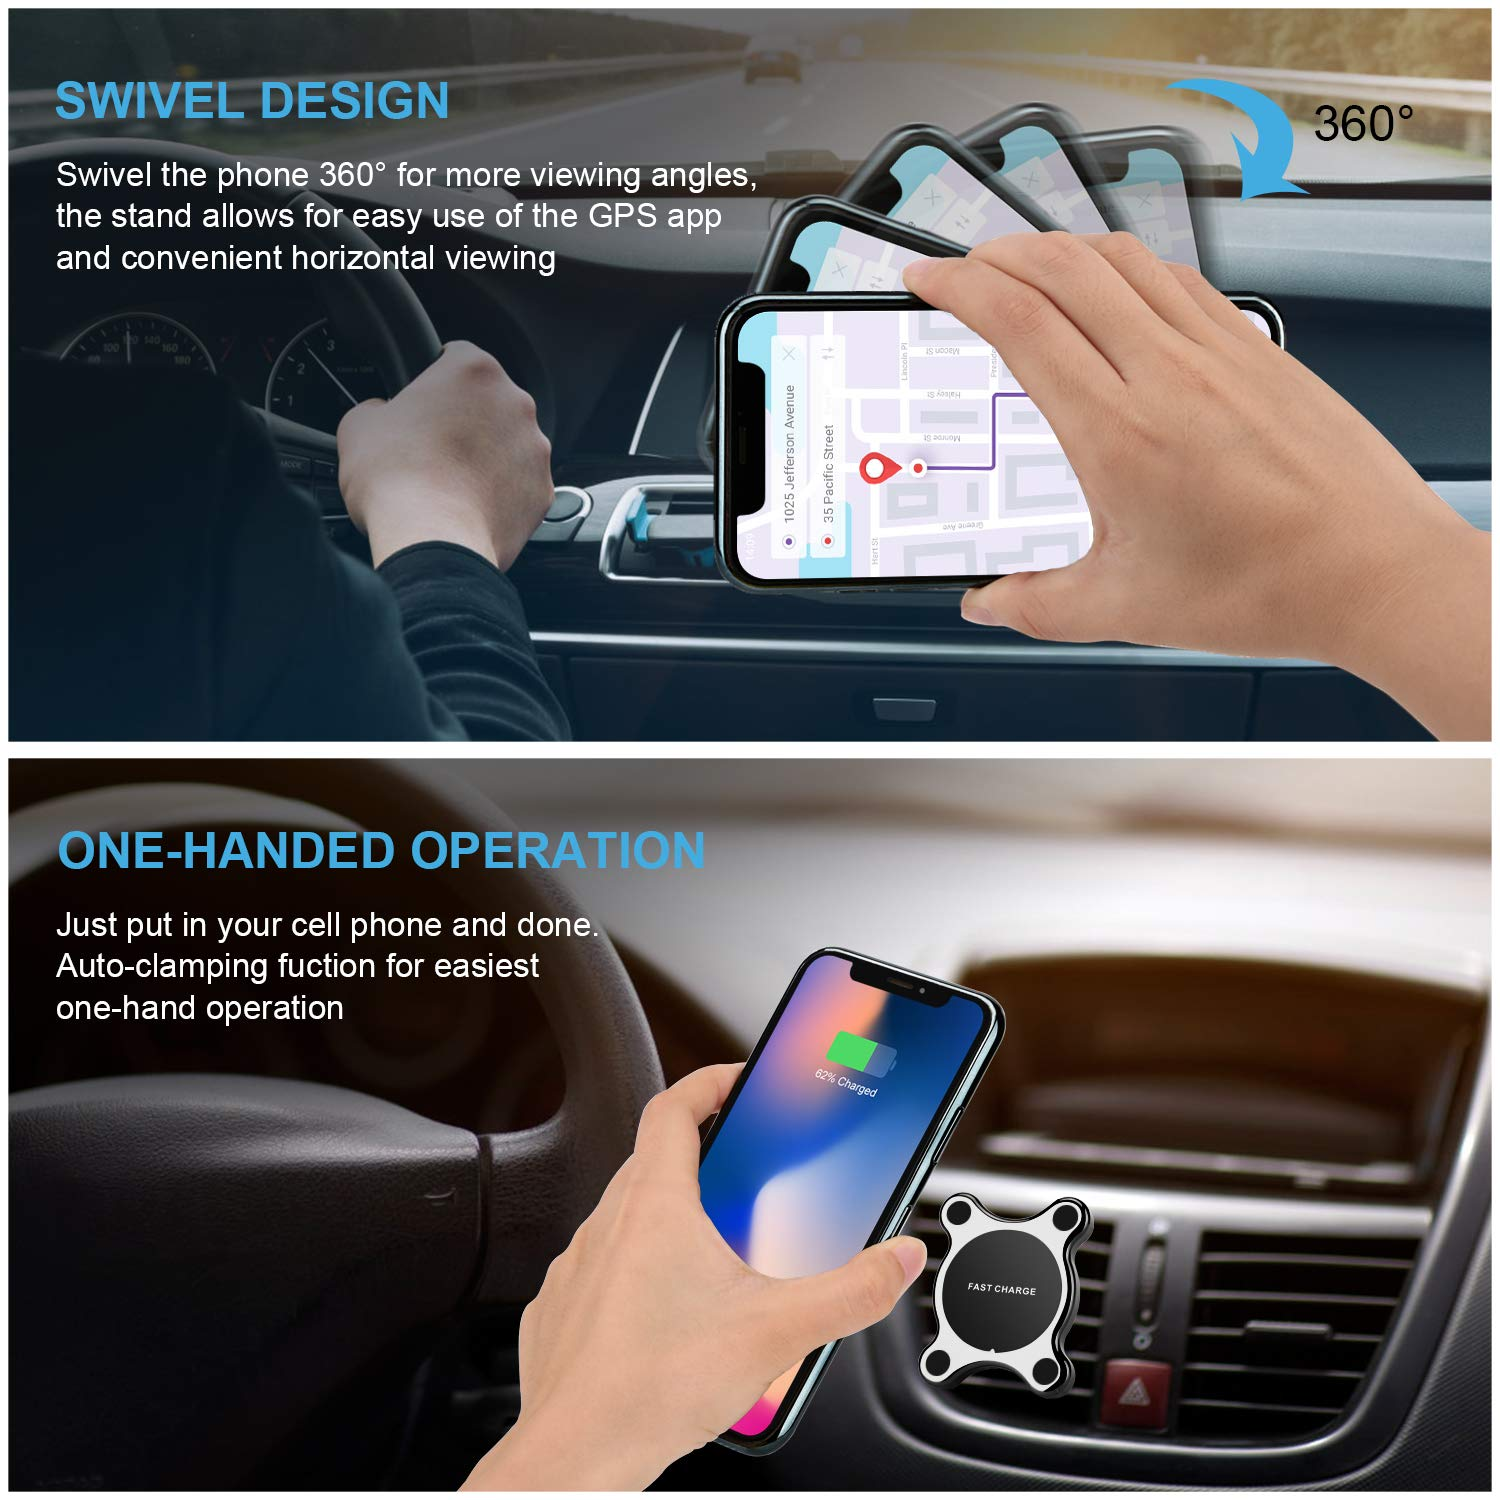 Car Phone Mount Easy One Touch Phone Holder For Car Universal Air Vent Magnetic Car Mount Phone Holder Cradle Washable Adhesive Stick On Dashboard Windshield Compatible iPhone X 8 Plus Samsung Galax BetterlivDirect 4351518794